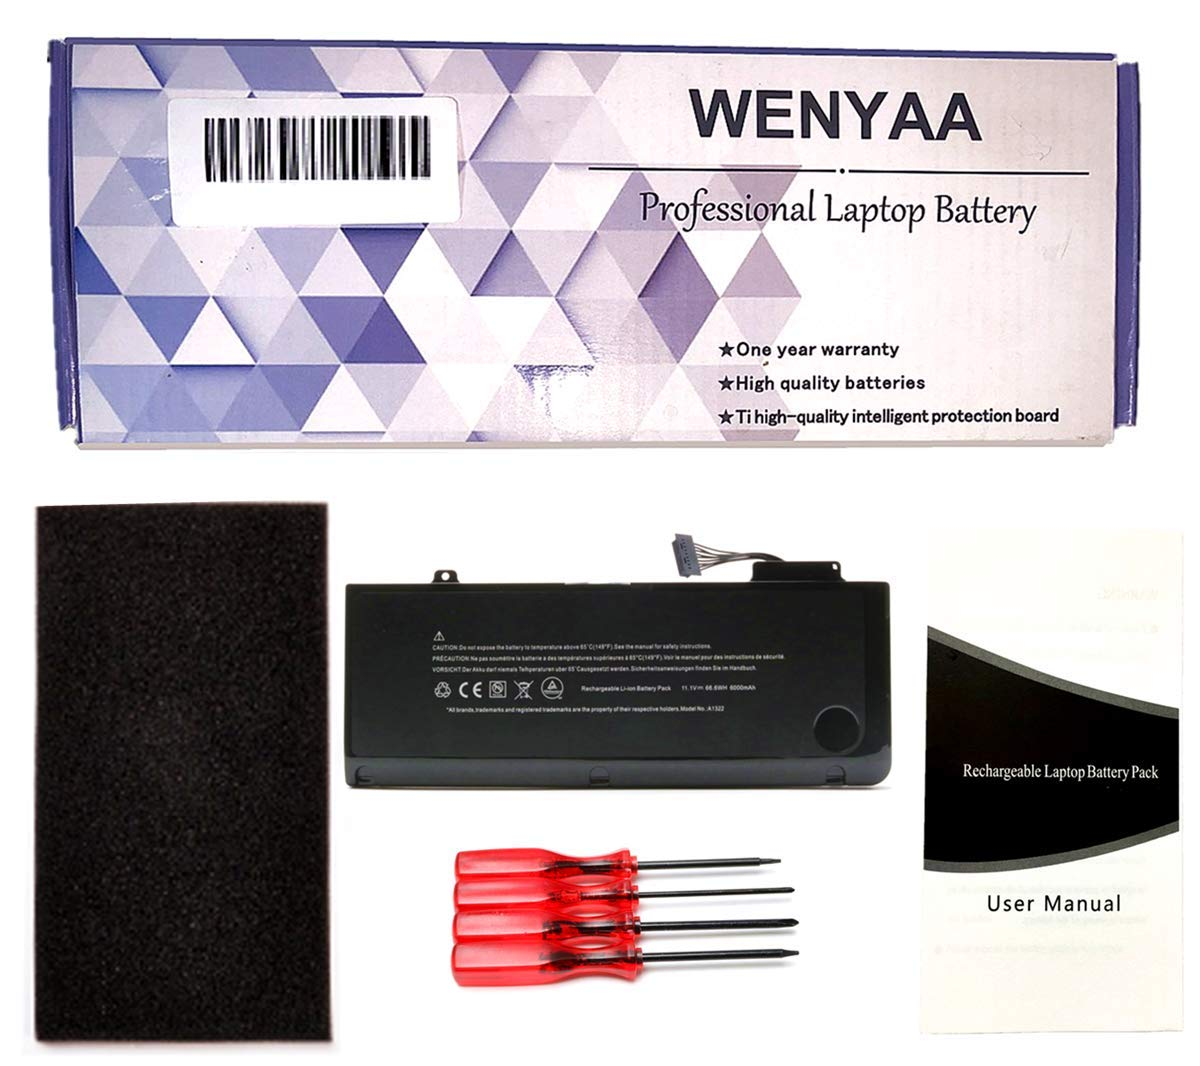 A1322 New Laptop Battery for MacBook Pro 13'' A1322 A1278 (Mid 2009,Mid 2010,Early 2011,Late 2011,Mid 2012);661-5229 020-6547-A 661-5557 MB990LL/A MB991LL/A MC374LL/A MC700LL/A --12 Months Warranty by WENYAA (Image #7)